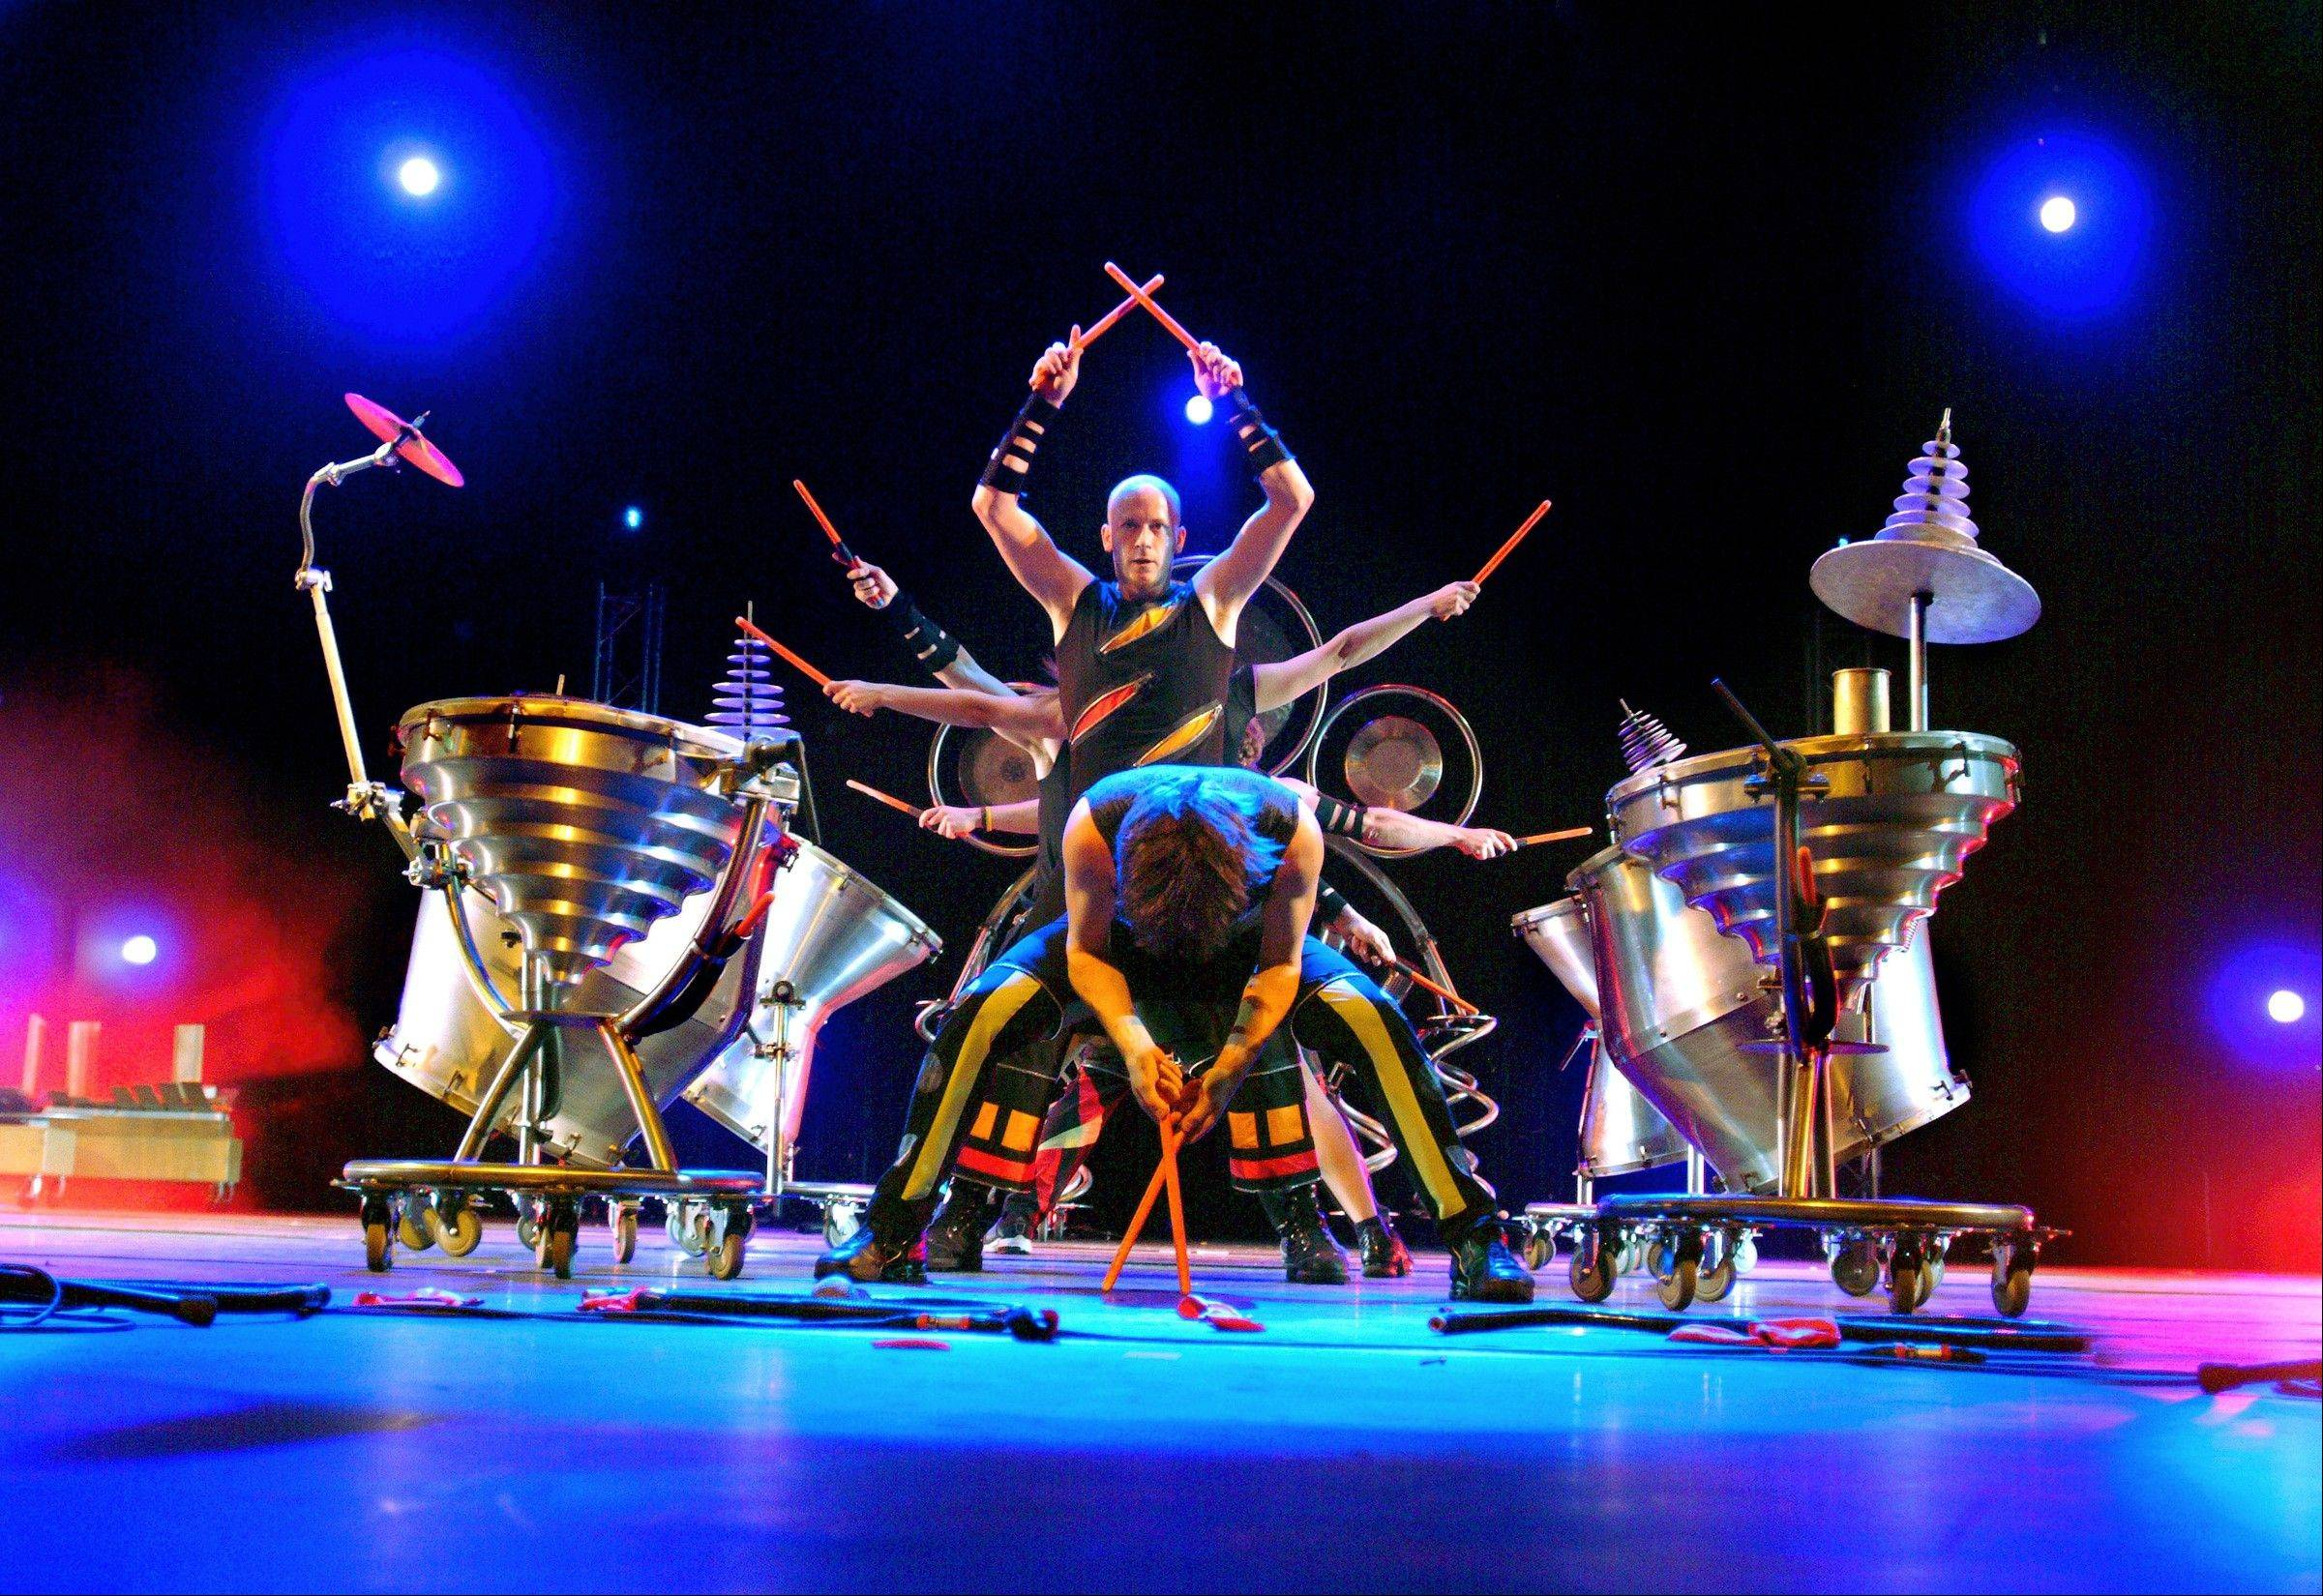 College of DuPage's McAninch Arts Center presents Canadian-based ScrapArts Music and their high-energy percussion and dance show at Ramsey Auditorium in Fermilab's Wilson Hall in Batavia on Saturday, March 23.